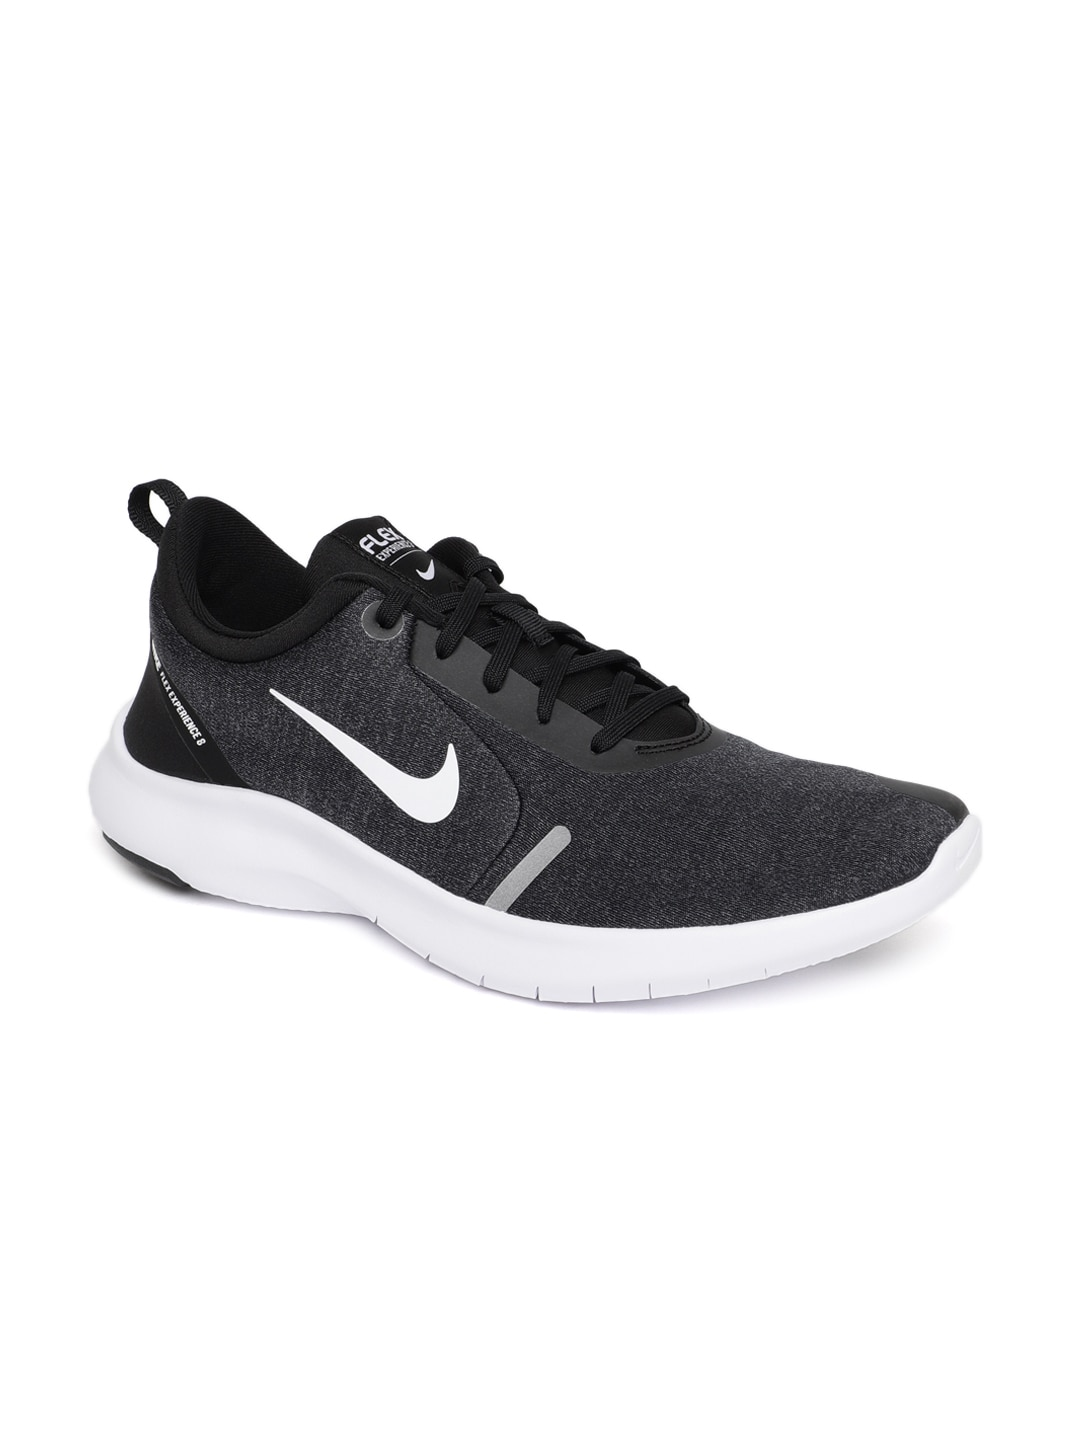 268ee0139229 Nike Running Shoes - Buy Nike Running Shoes Online